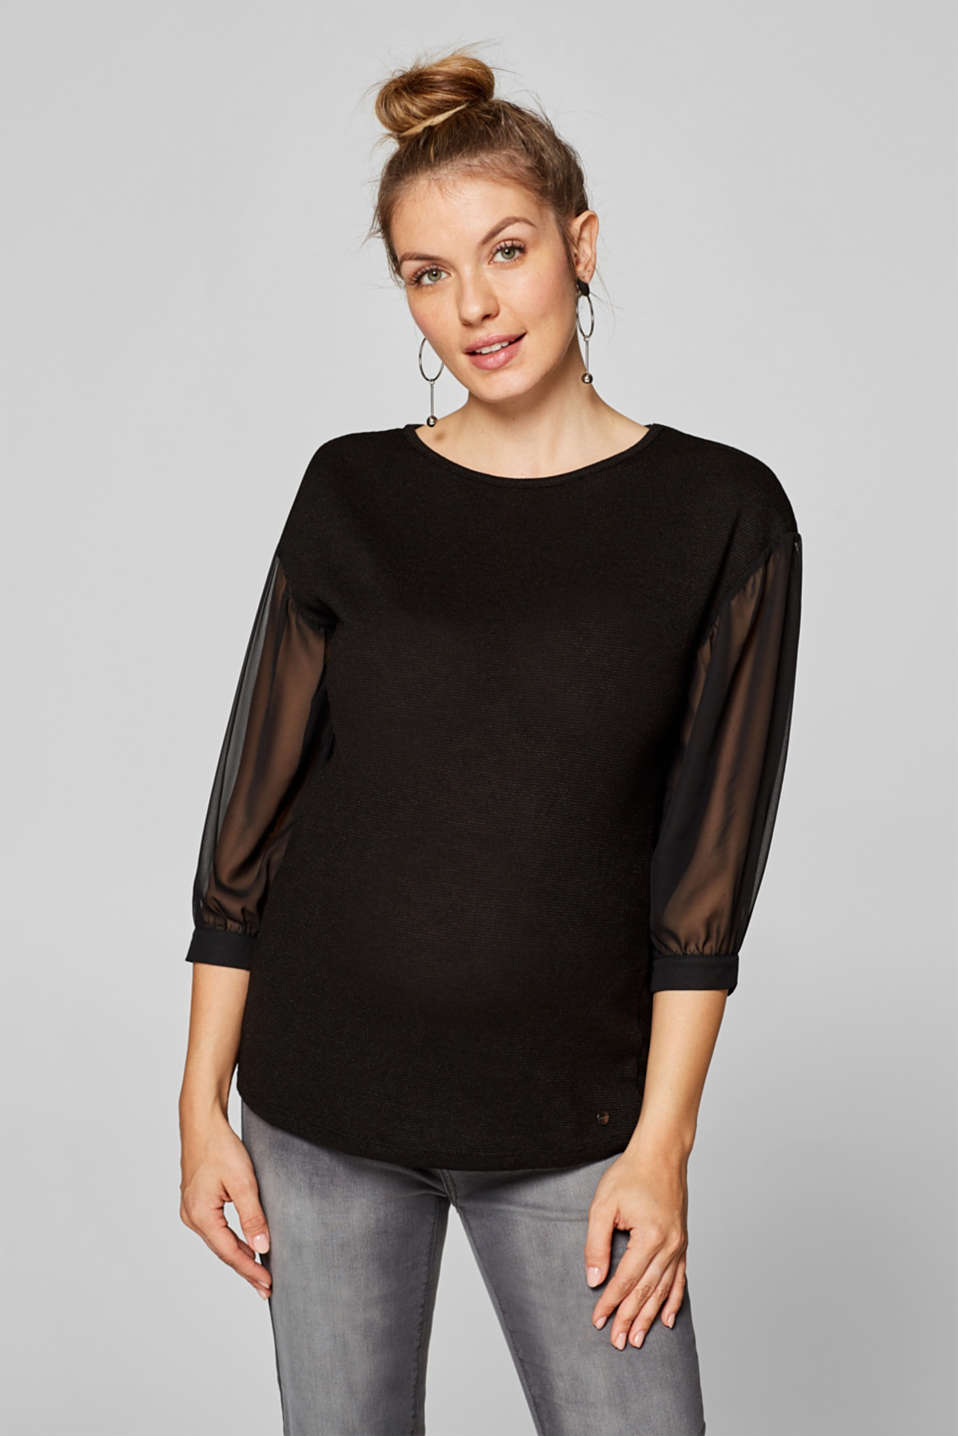 Esprit - Textured top with chiffon sleeves